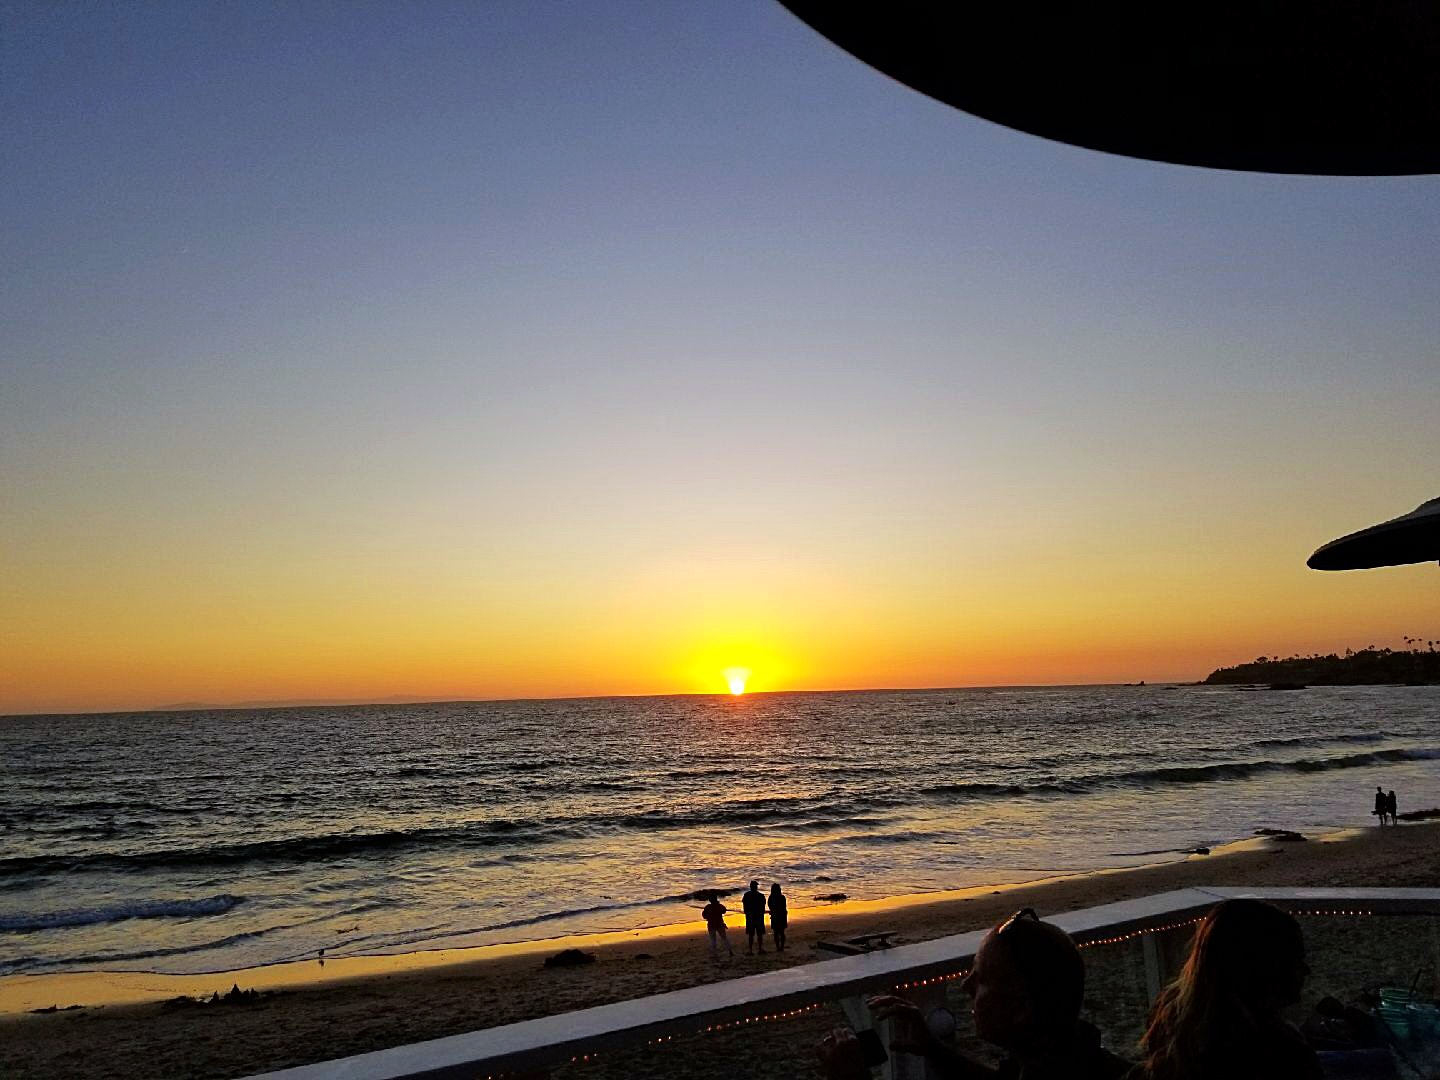 Sunset @ Laguna Beach